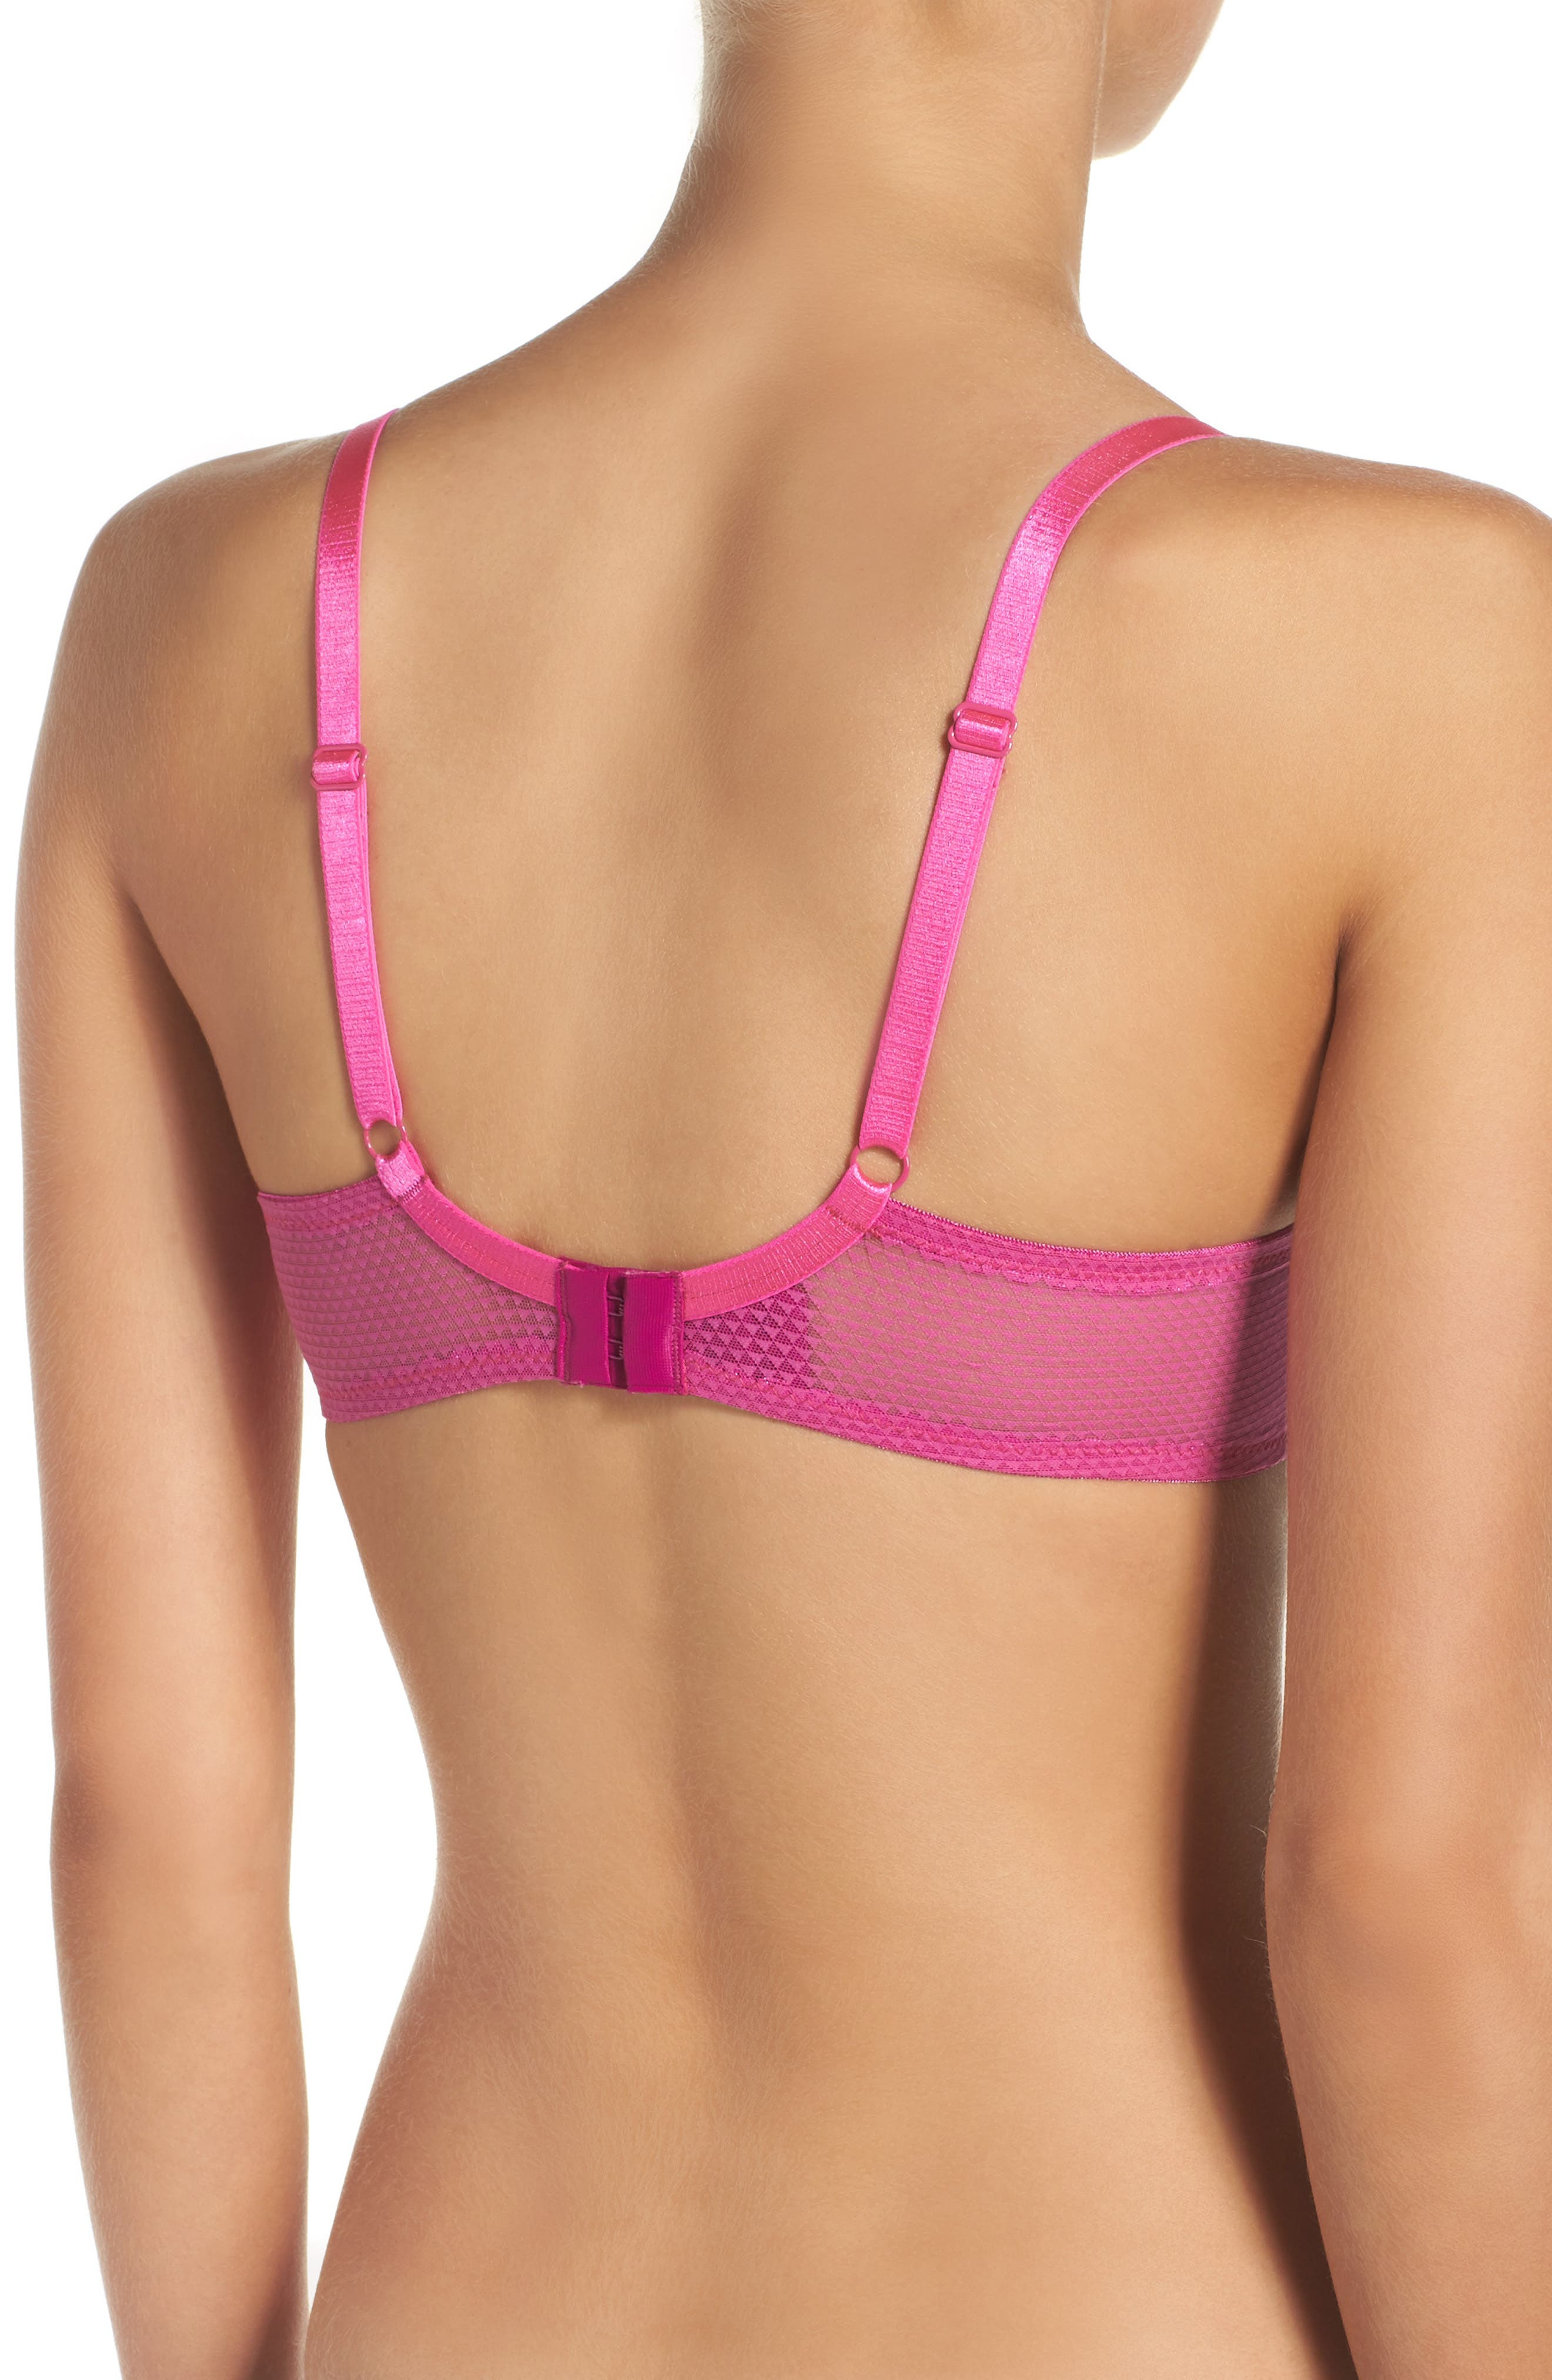 'Brooklyn' Underwire T-Shirt Bra,                             Alternate thumbnail 24, color,